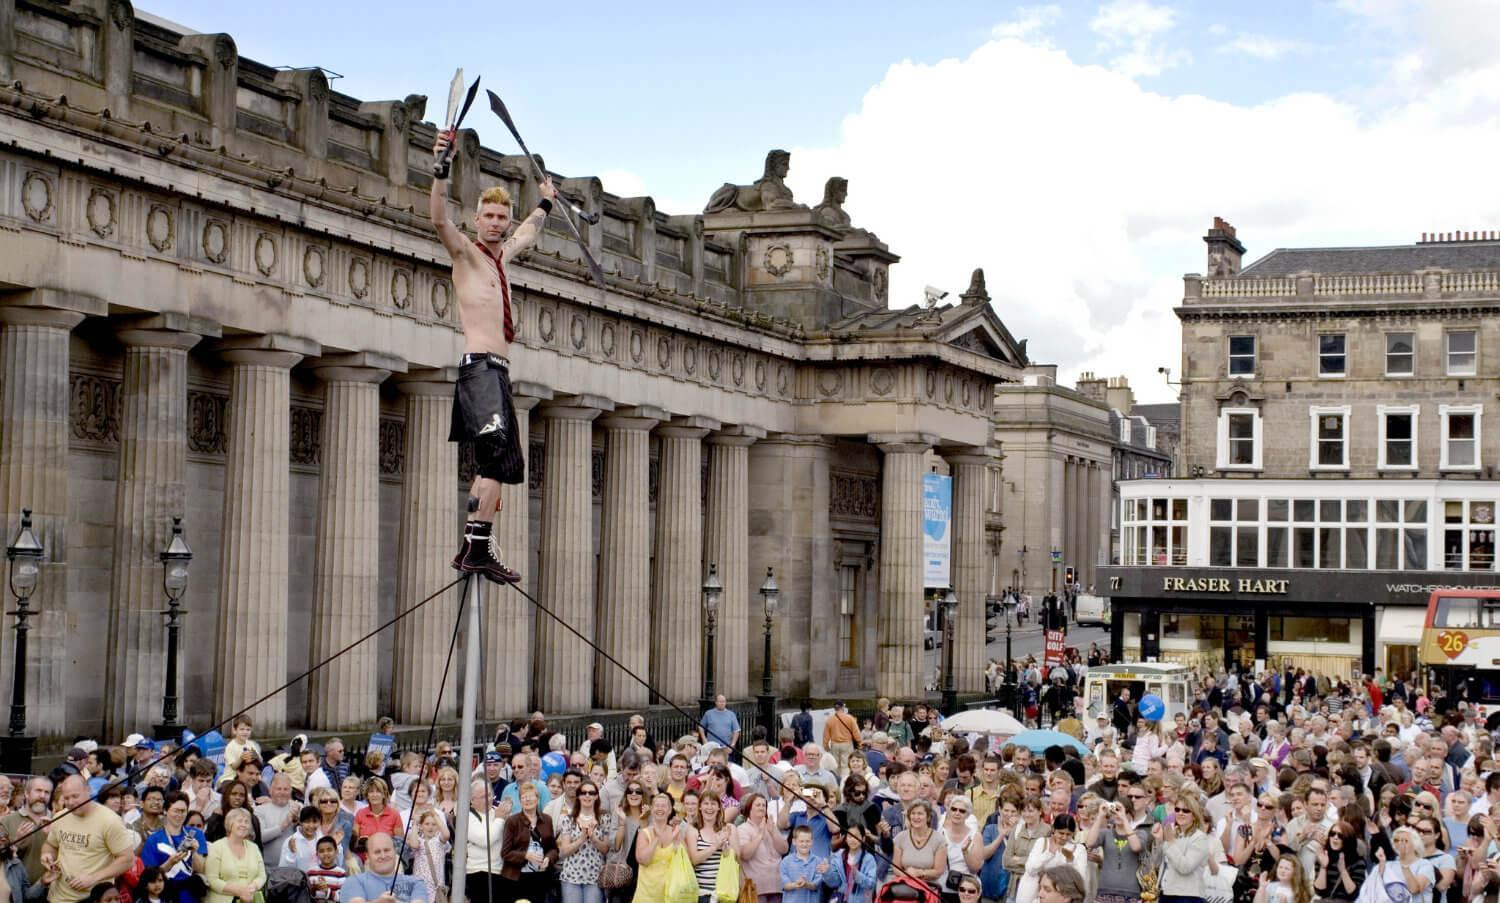 Juggler on the Mound, Edinburgh